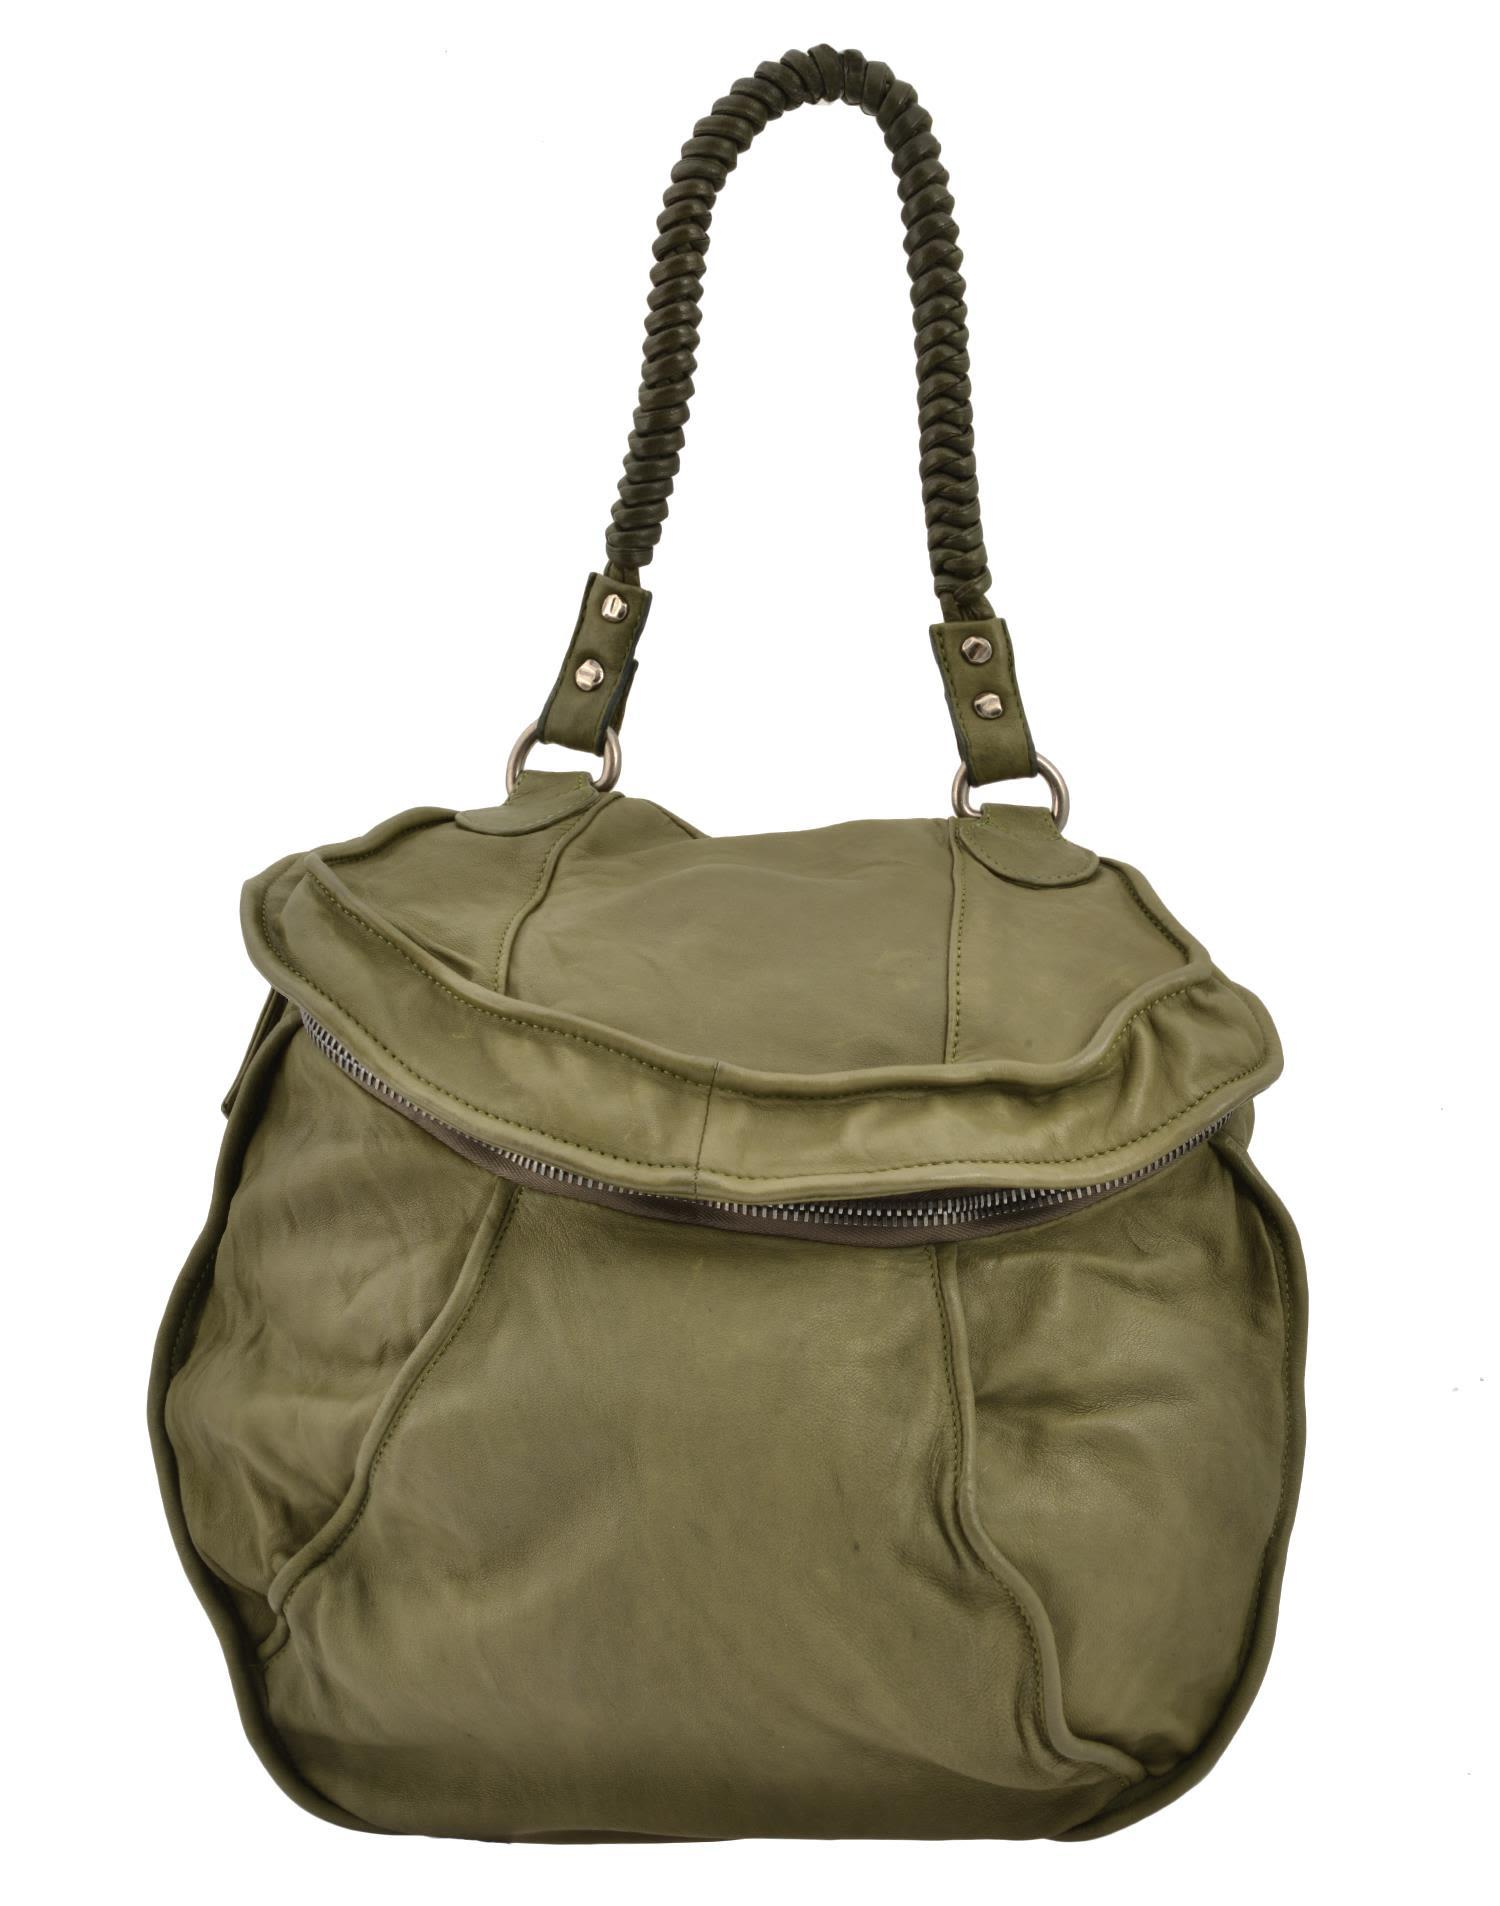 Giorgio Brato Vegetable Leather Bag In Green